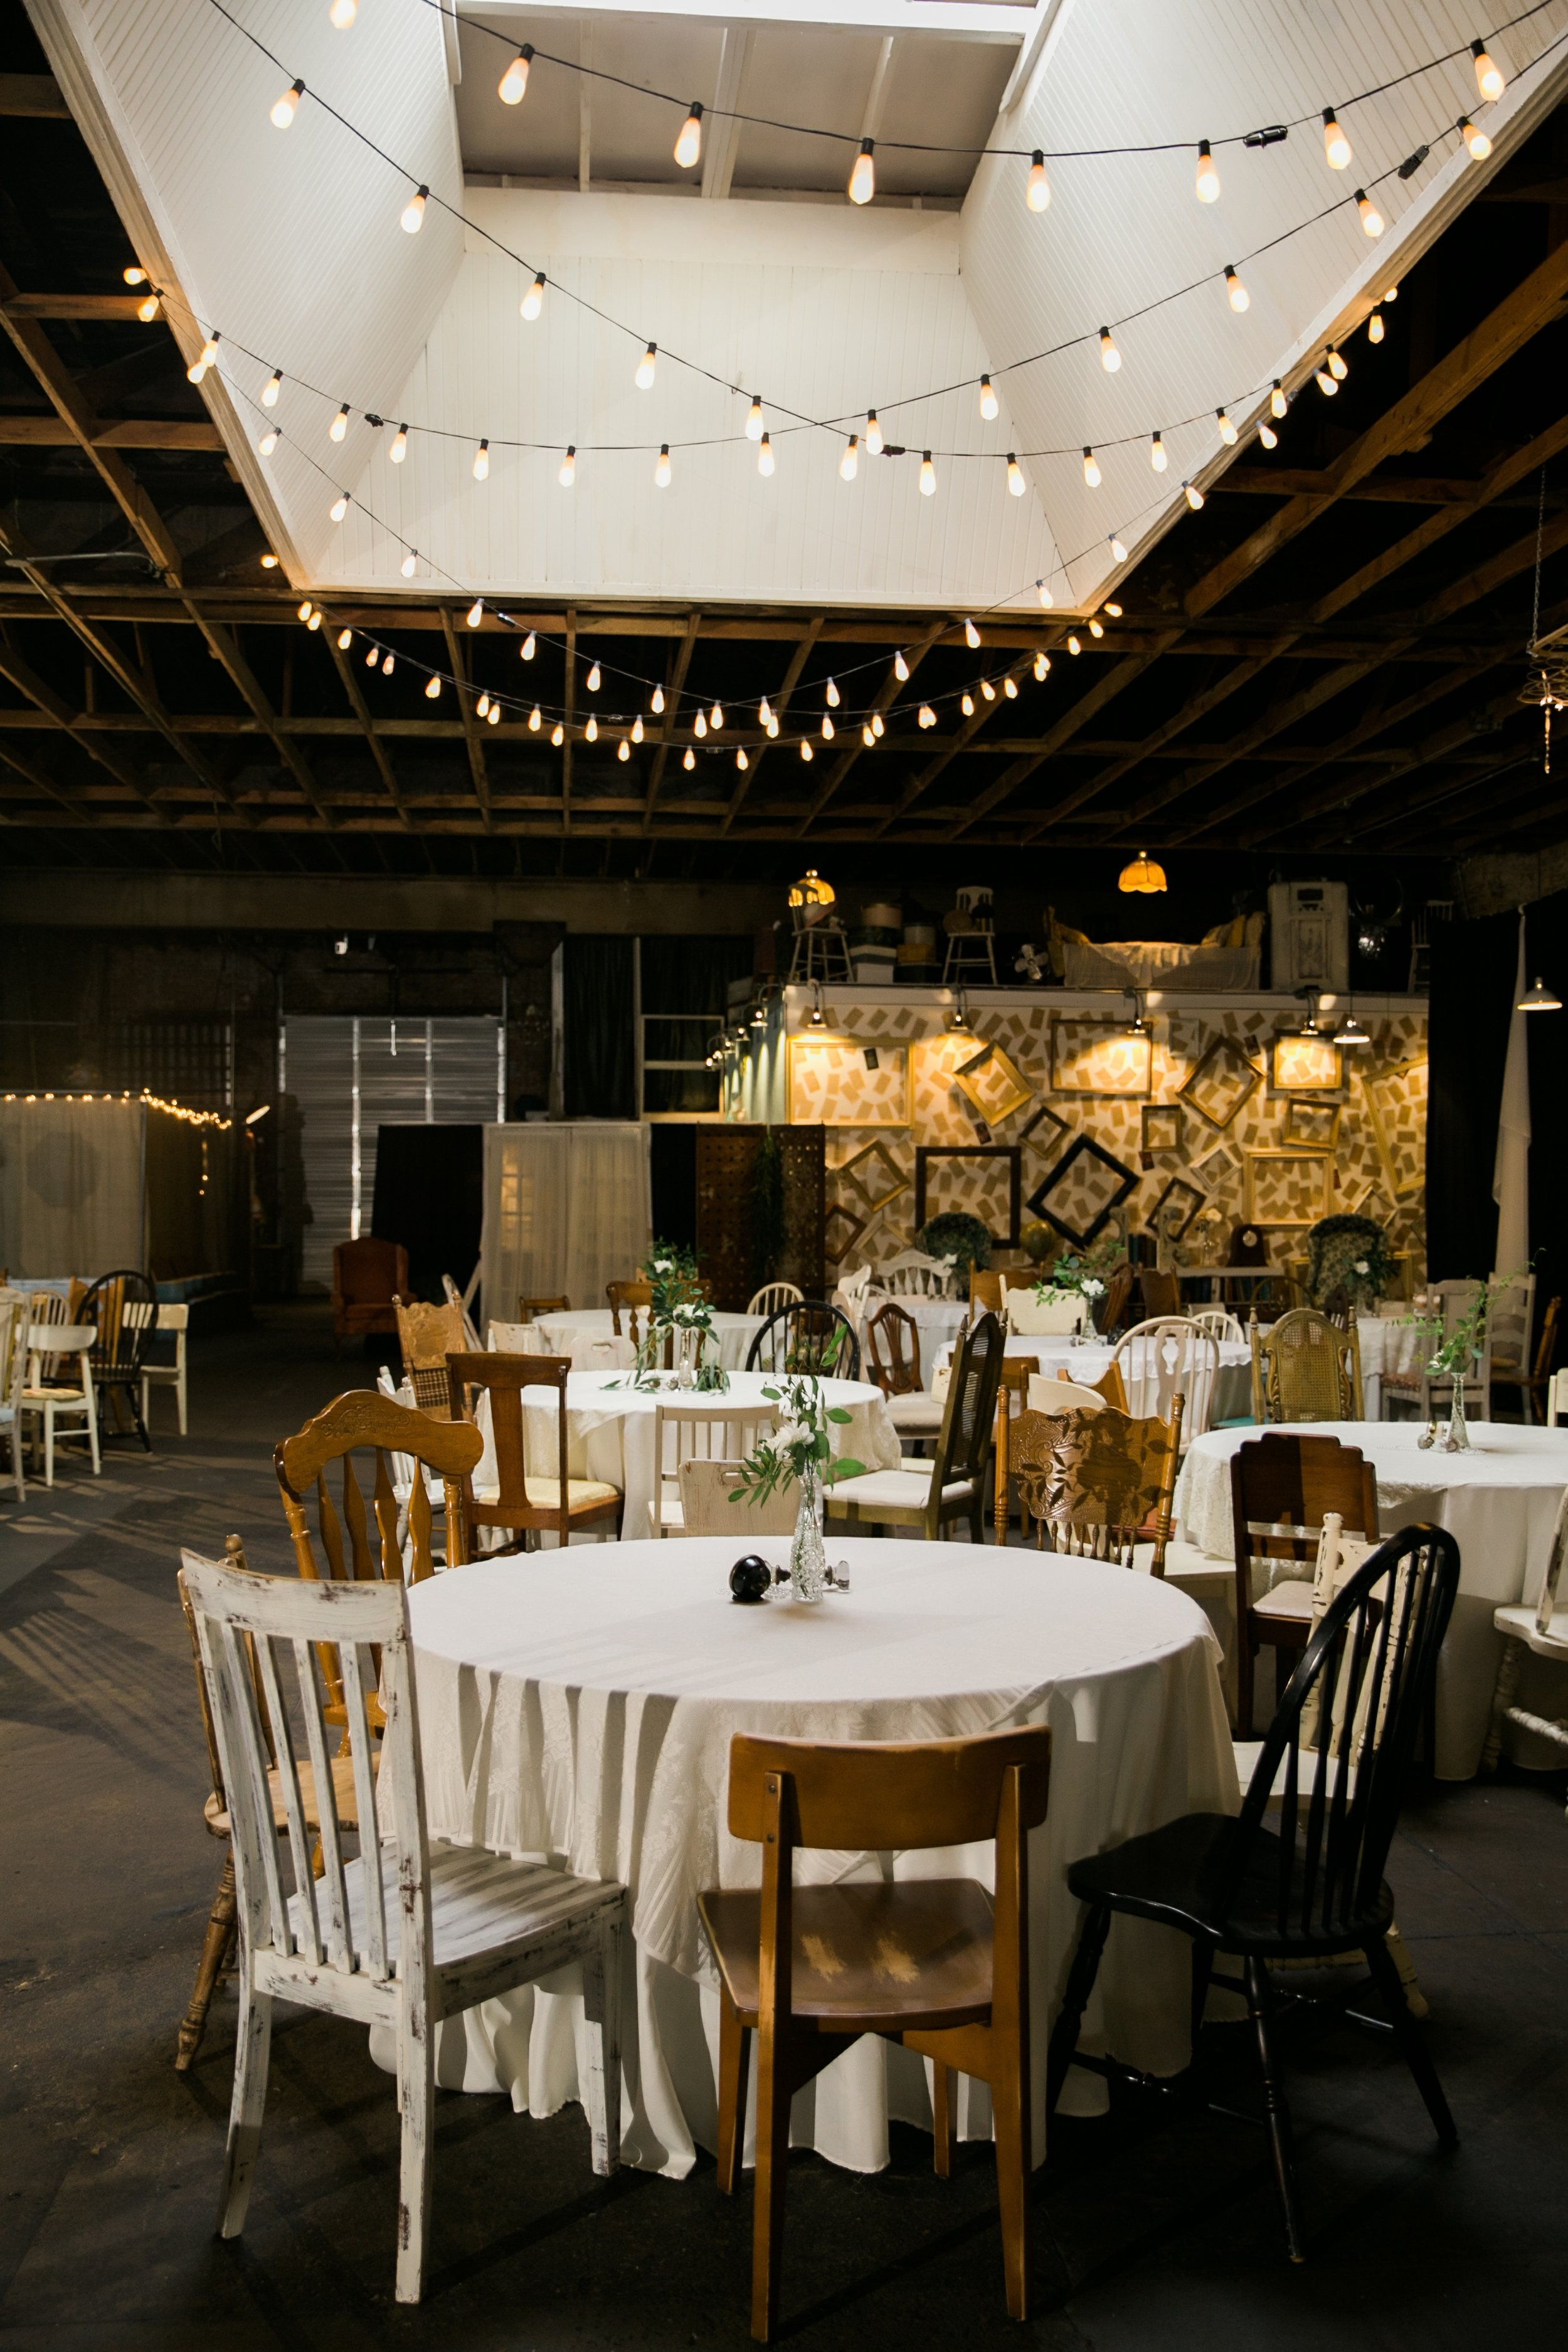 Magan-Landon-Surprise-wedding-at-southern-jeweled-warehouse-wichita-falls-texas-lauren-pinson-065.jpg